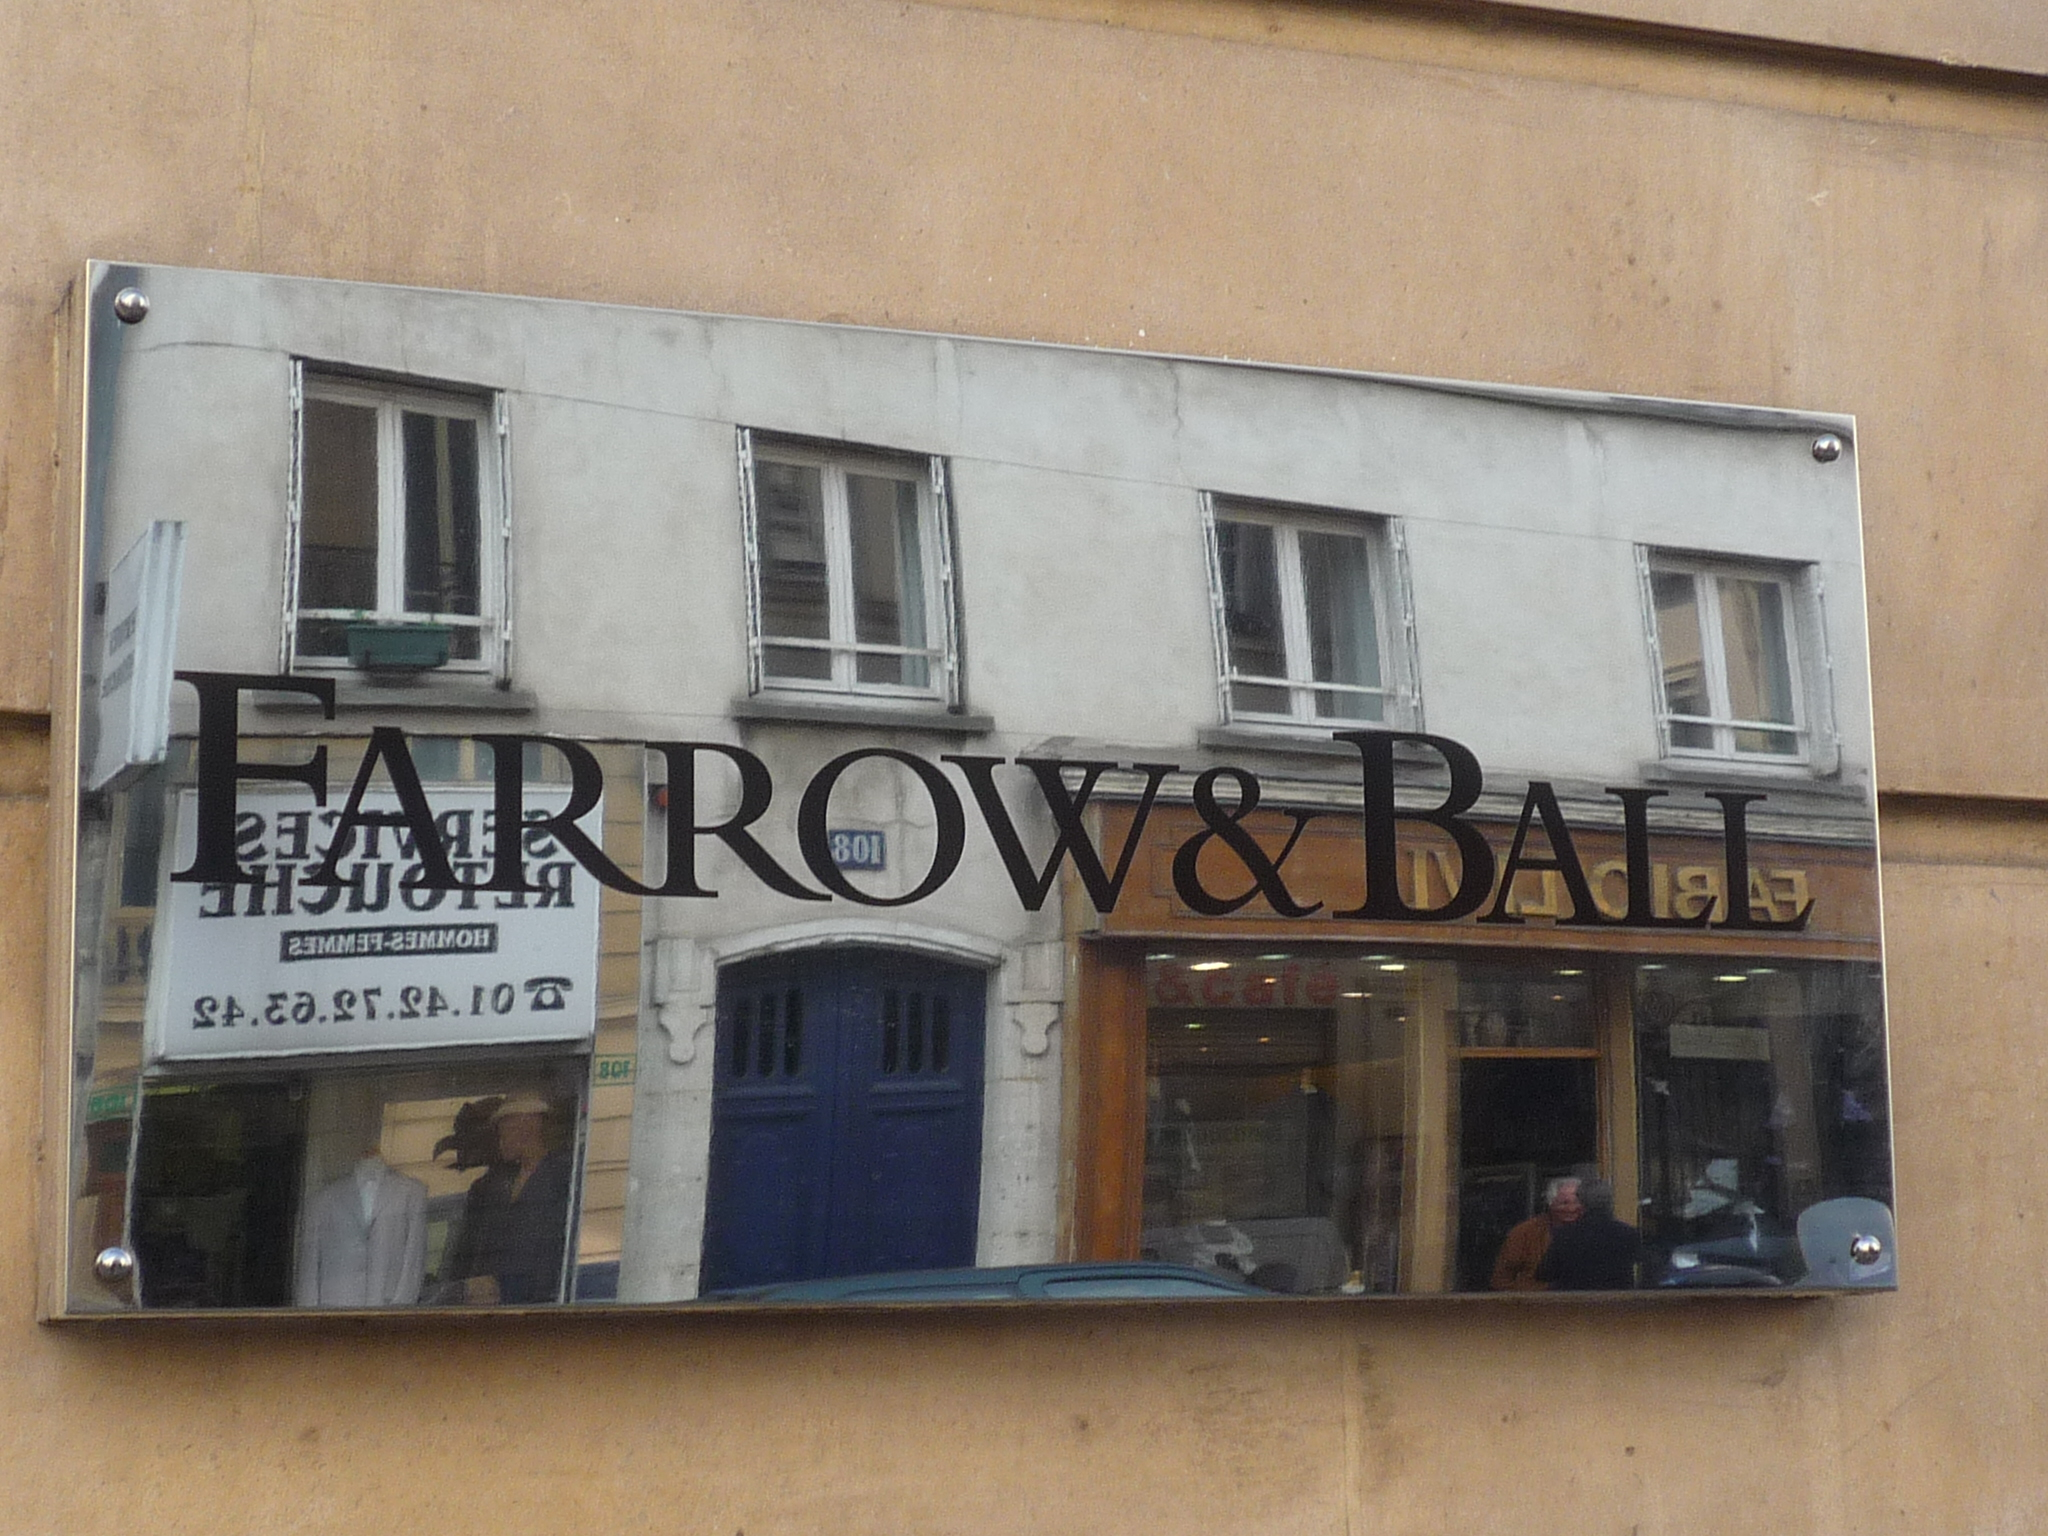 Apr s la mode les boutiques de d co fleurissent dans le marais denicher - Farrow and ball marais ...